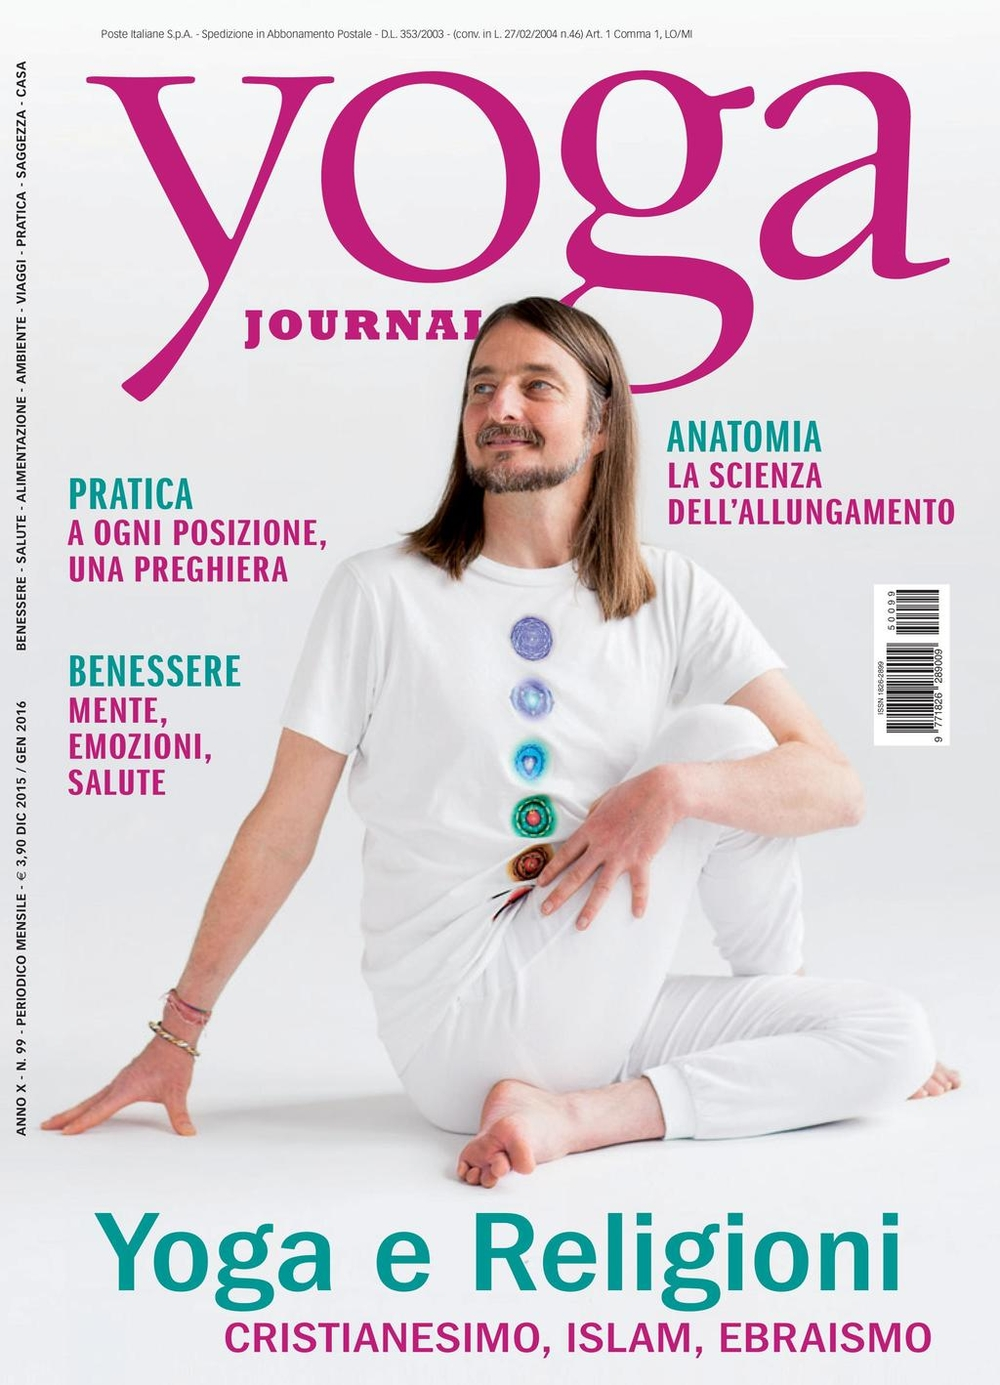 Yoga Journal n. 99